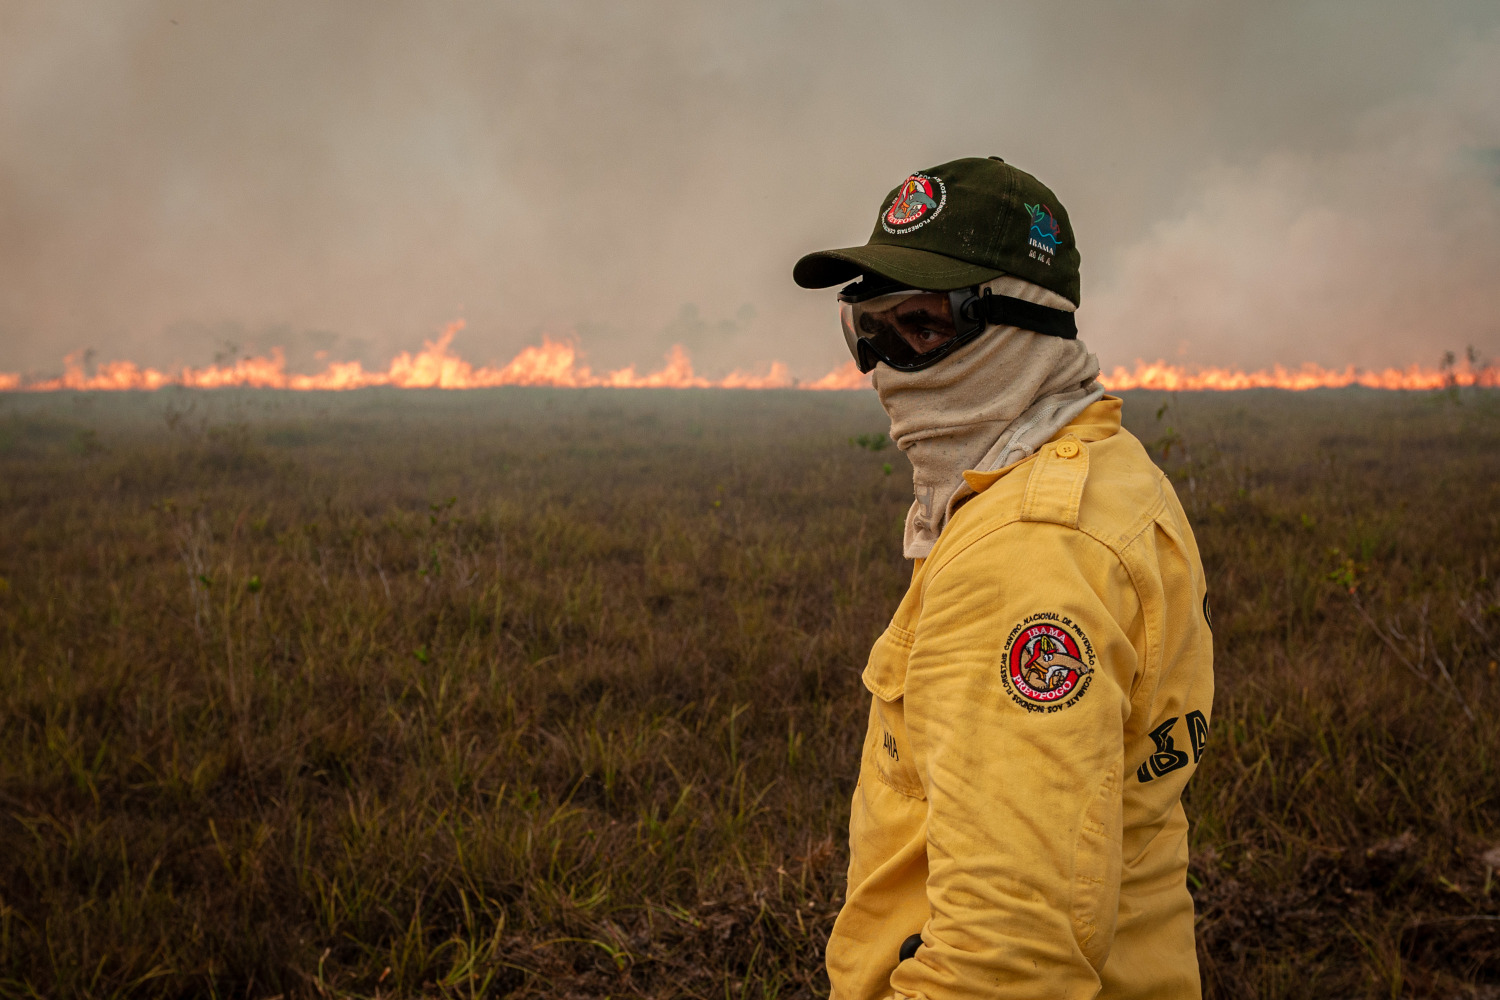 Prevfogo/Ibama officer fighting a fire in the Amazon – Photo: Vinícius Mendonça/Ibama